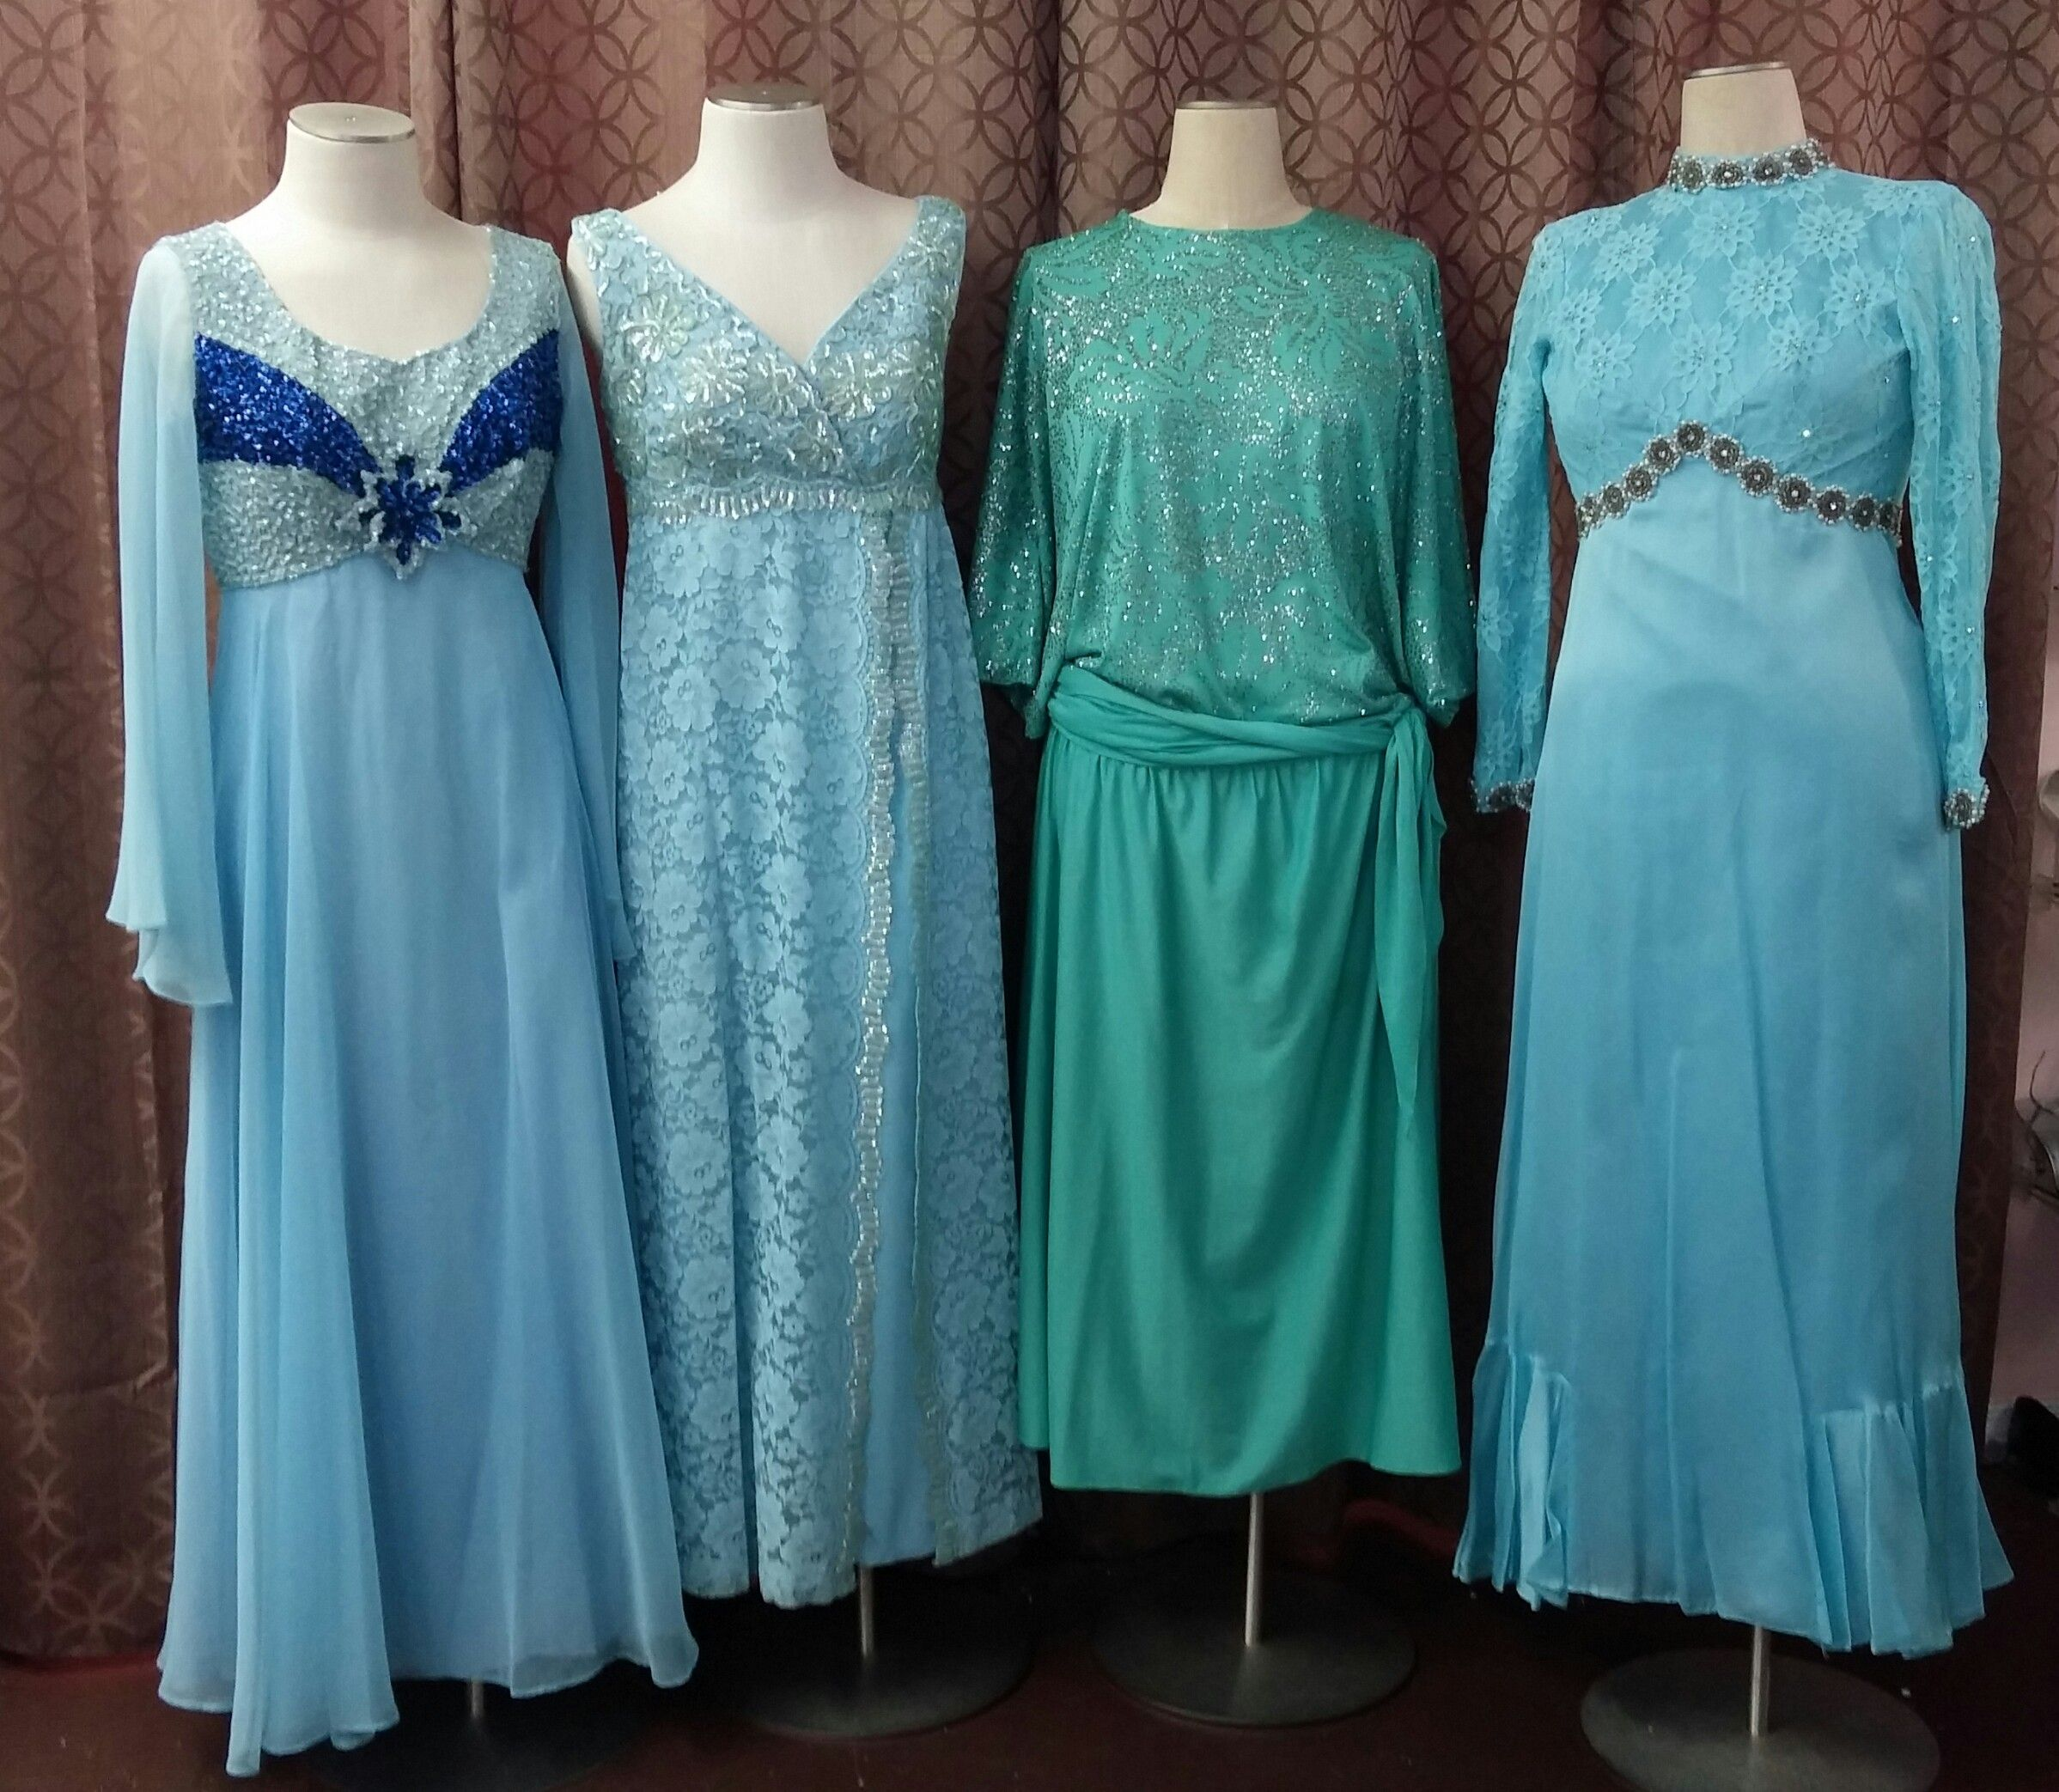 Vintage Formal Dresses 1960s & 1970s by Mike Benet and Emma Domb ...